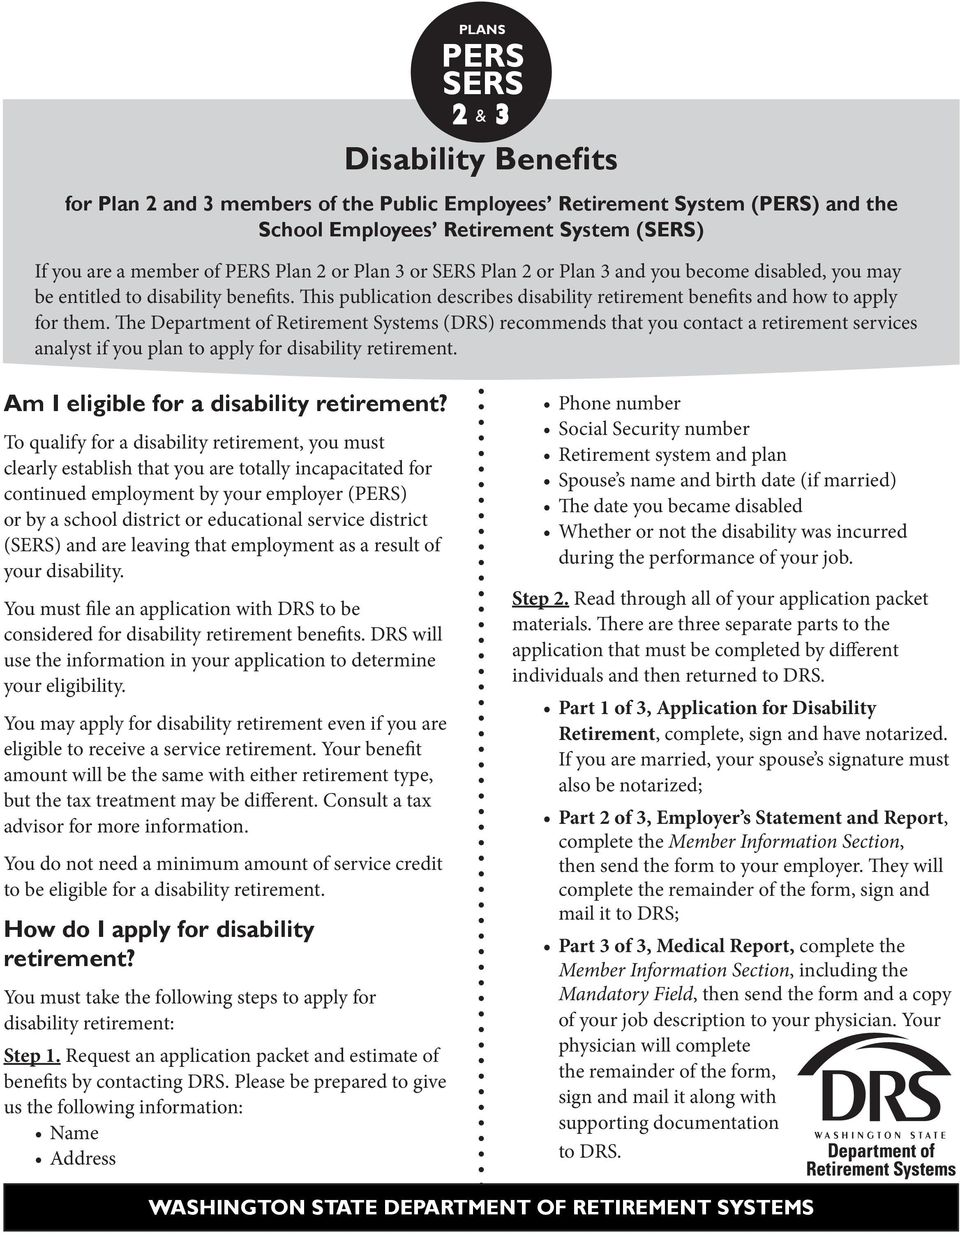 The Department of Retirement Systems (DRS) recommends that you contact a retirement services analyst if you plan to apply for disability retirement. Am I eligible for a disability retirement?